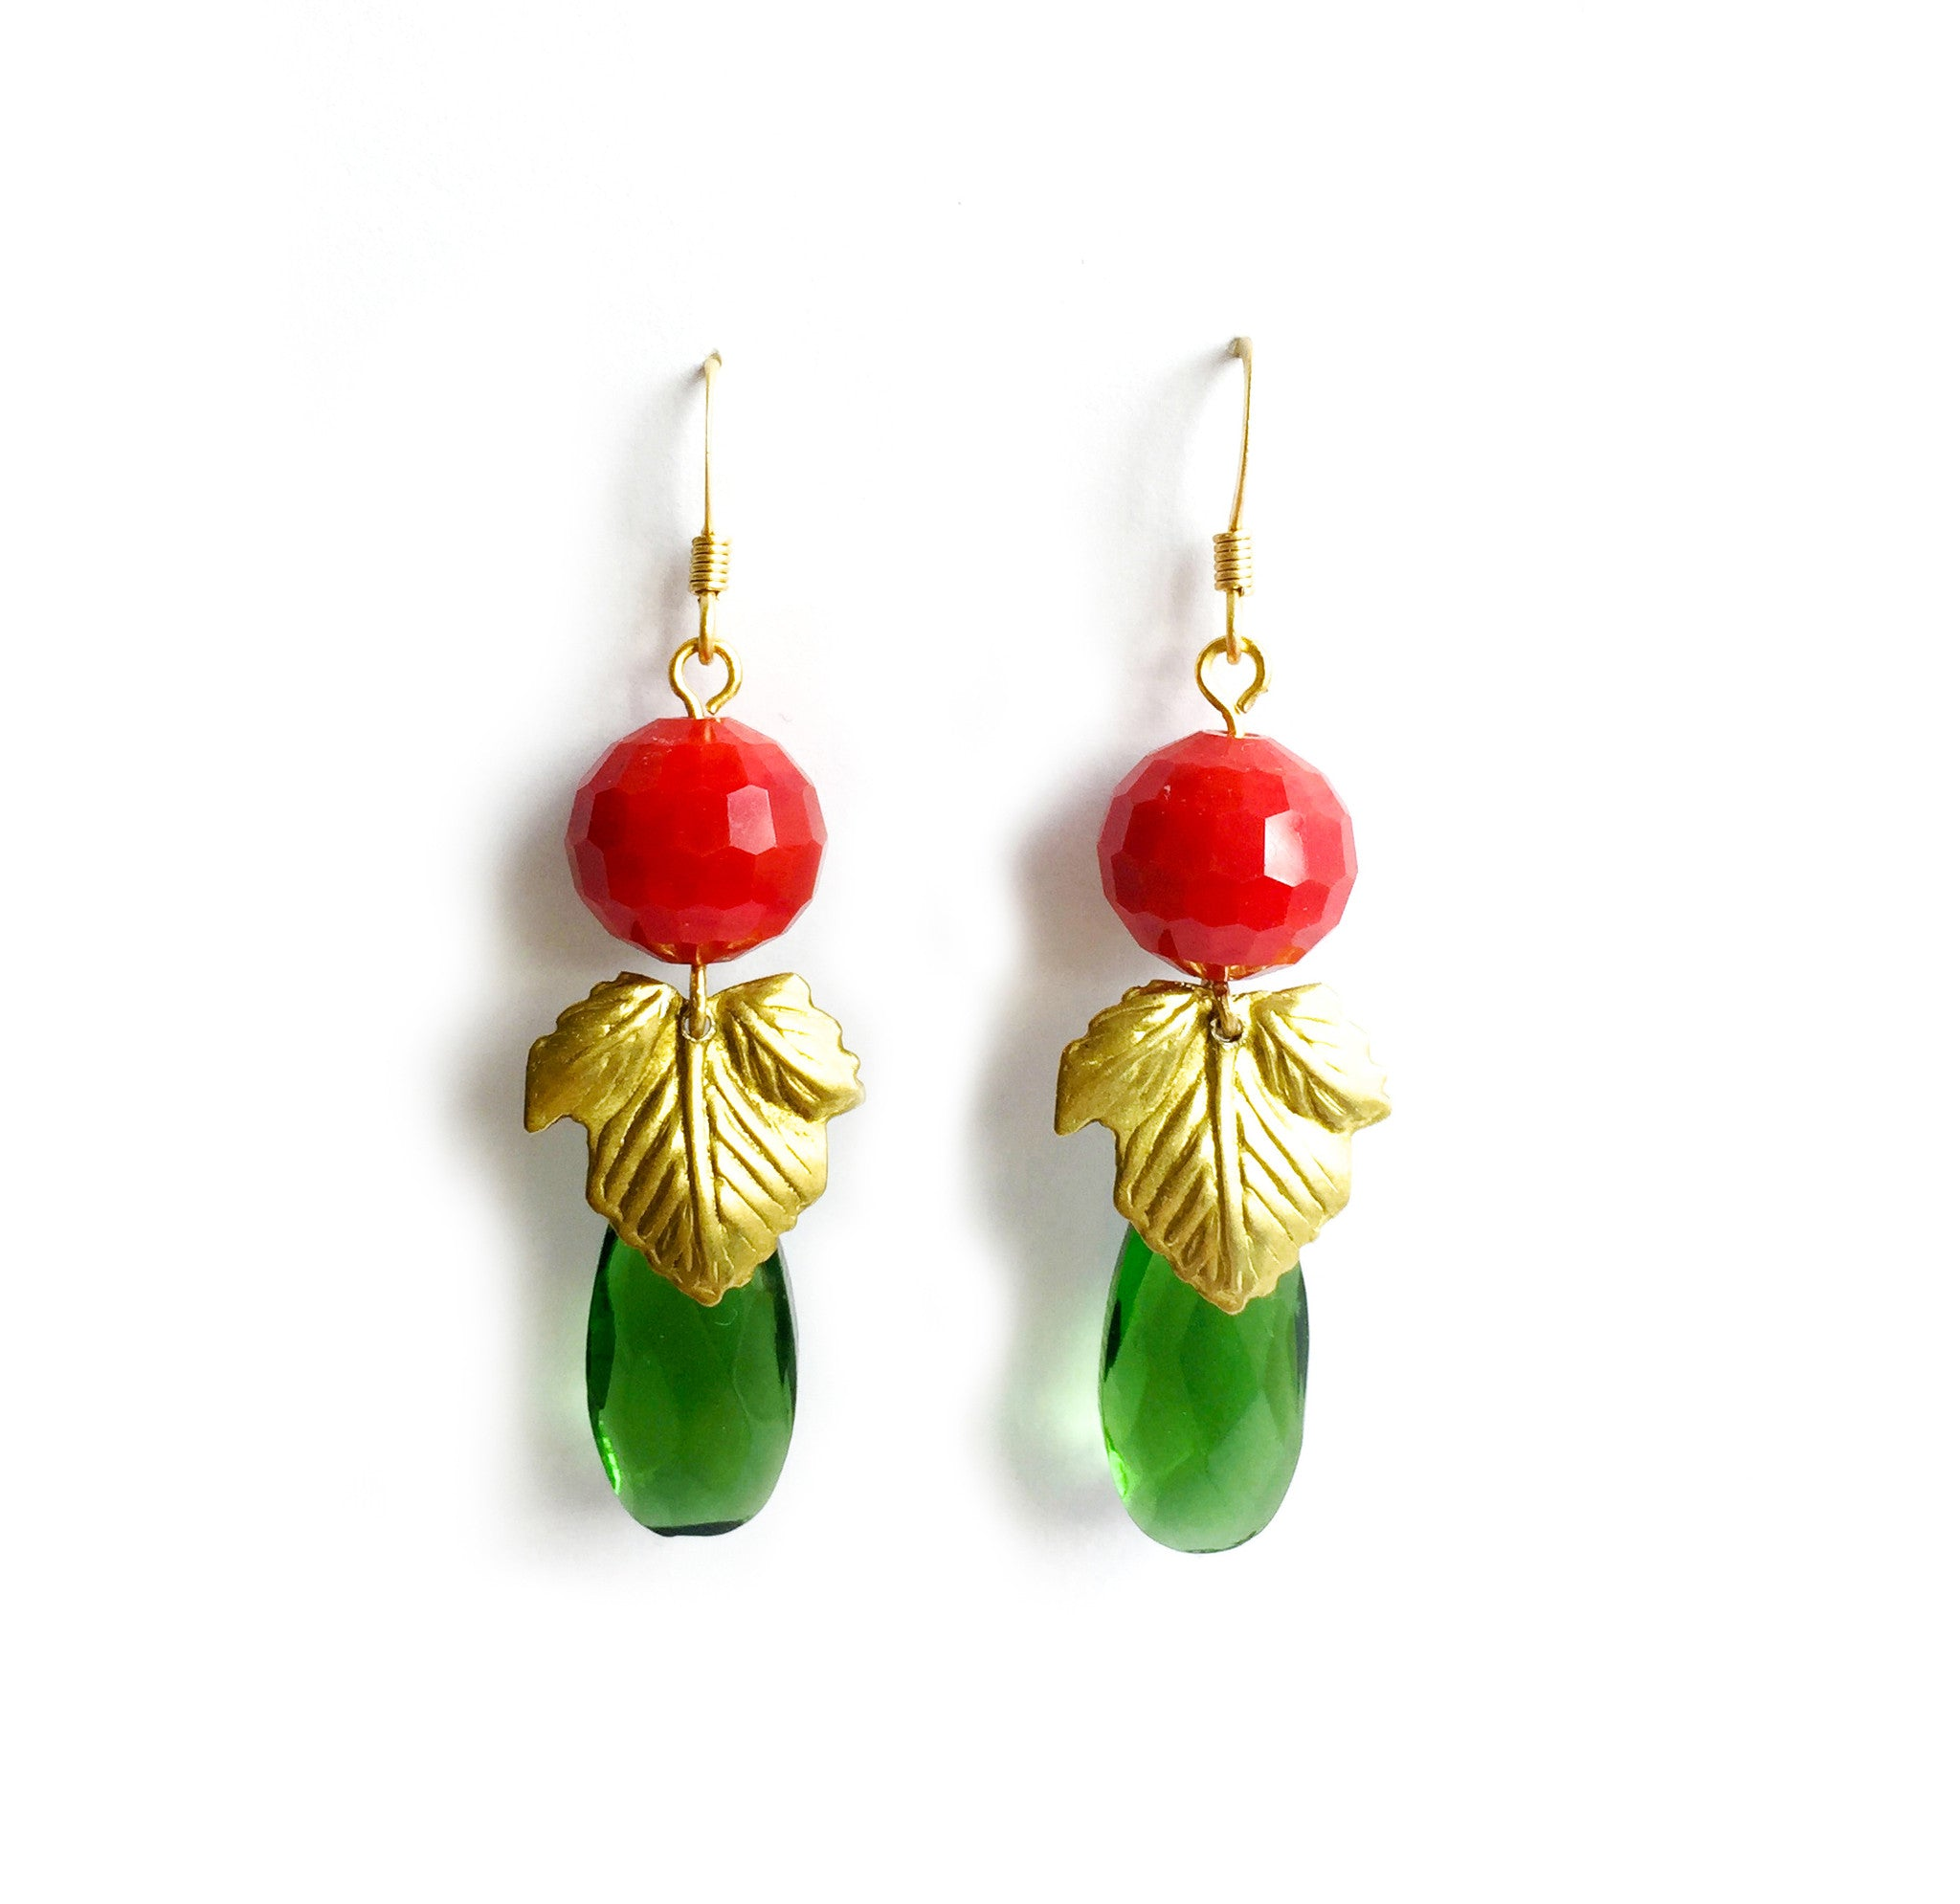 ADA EARRINGS